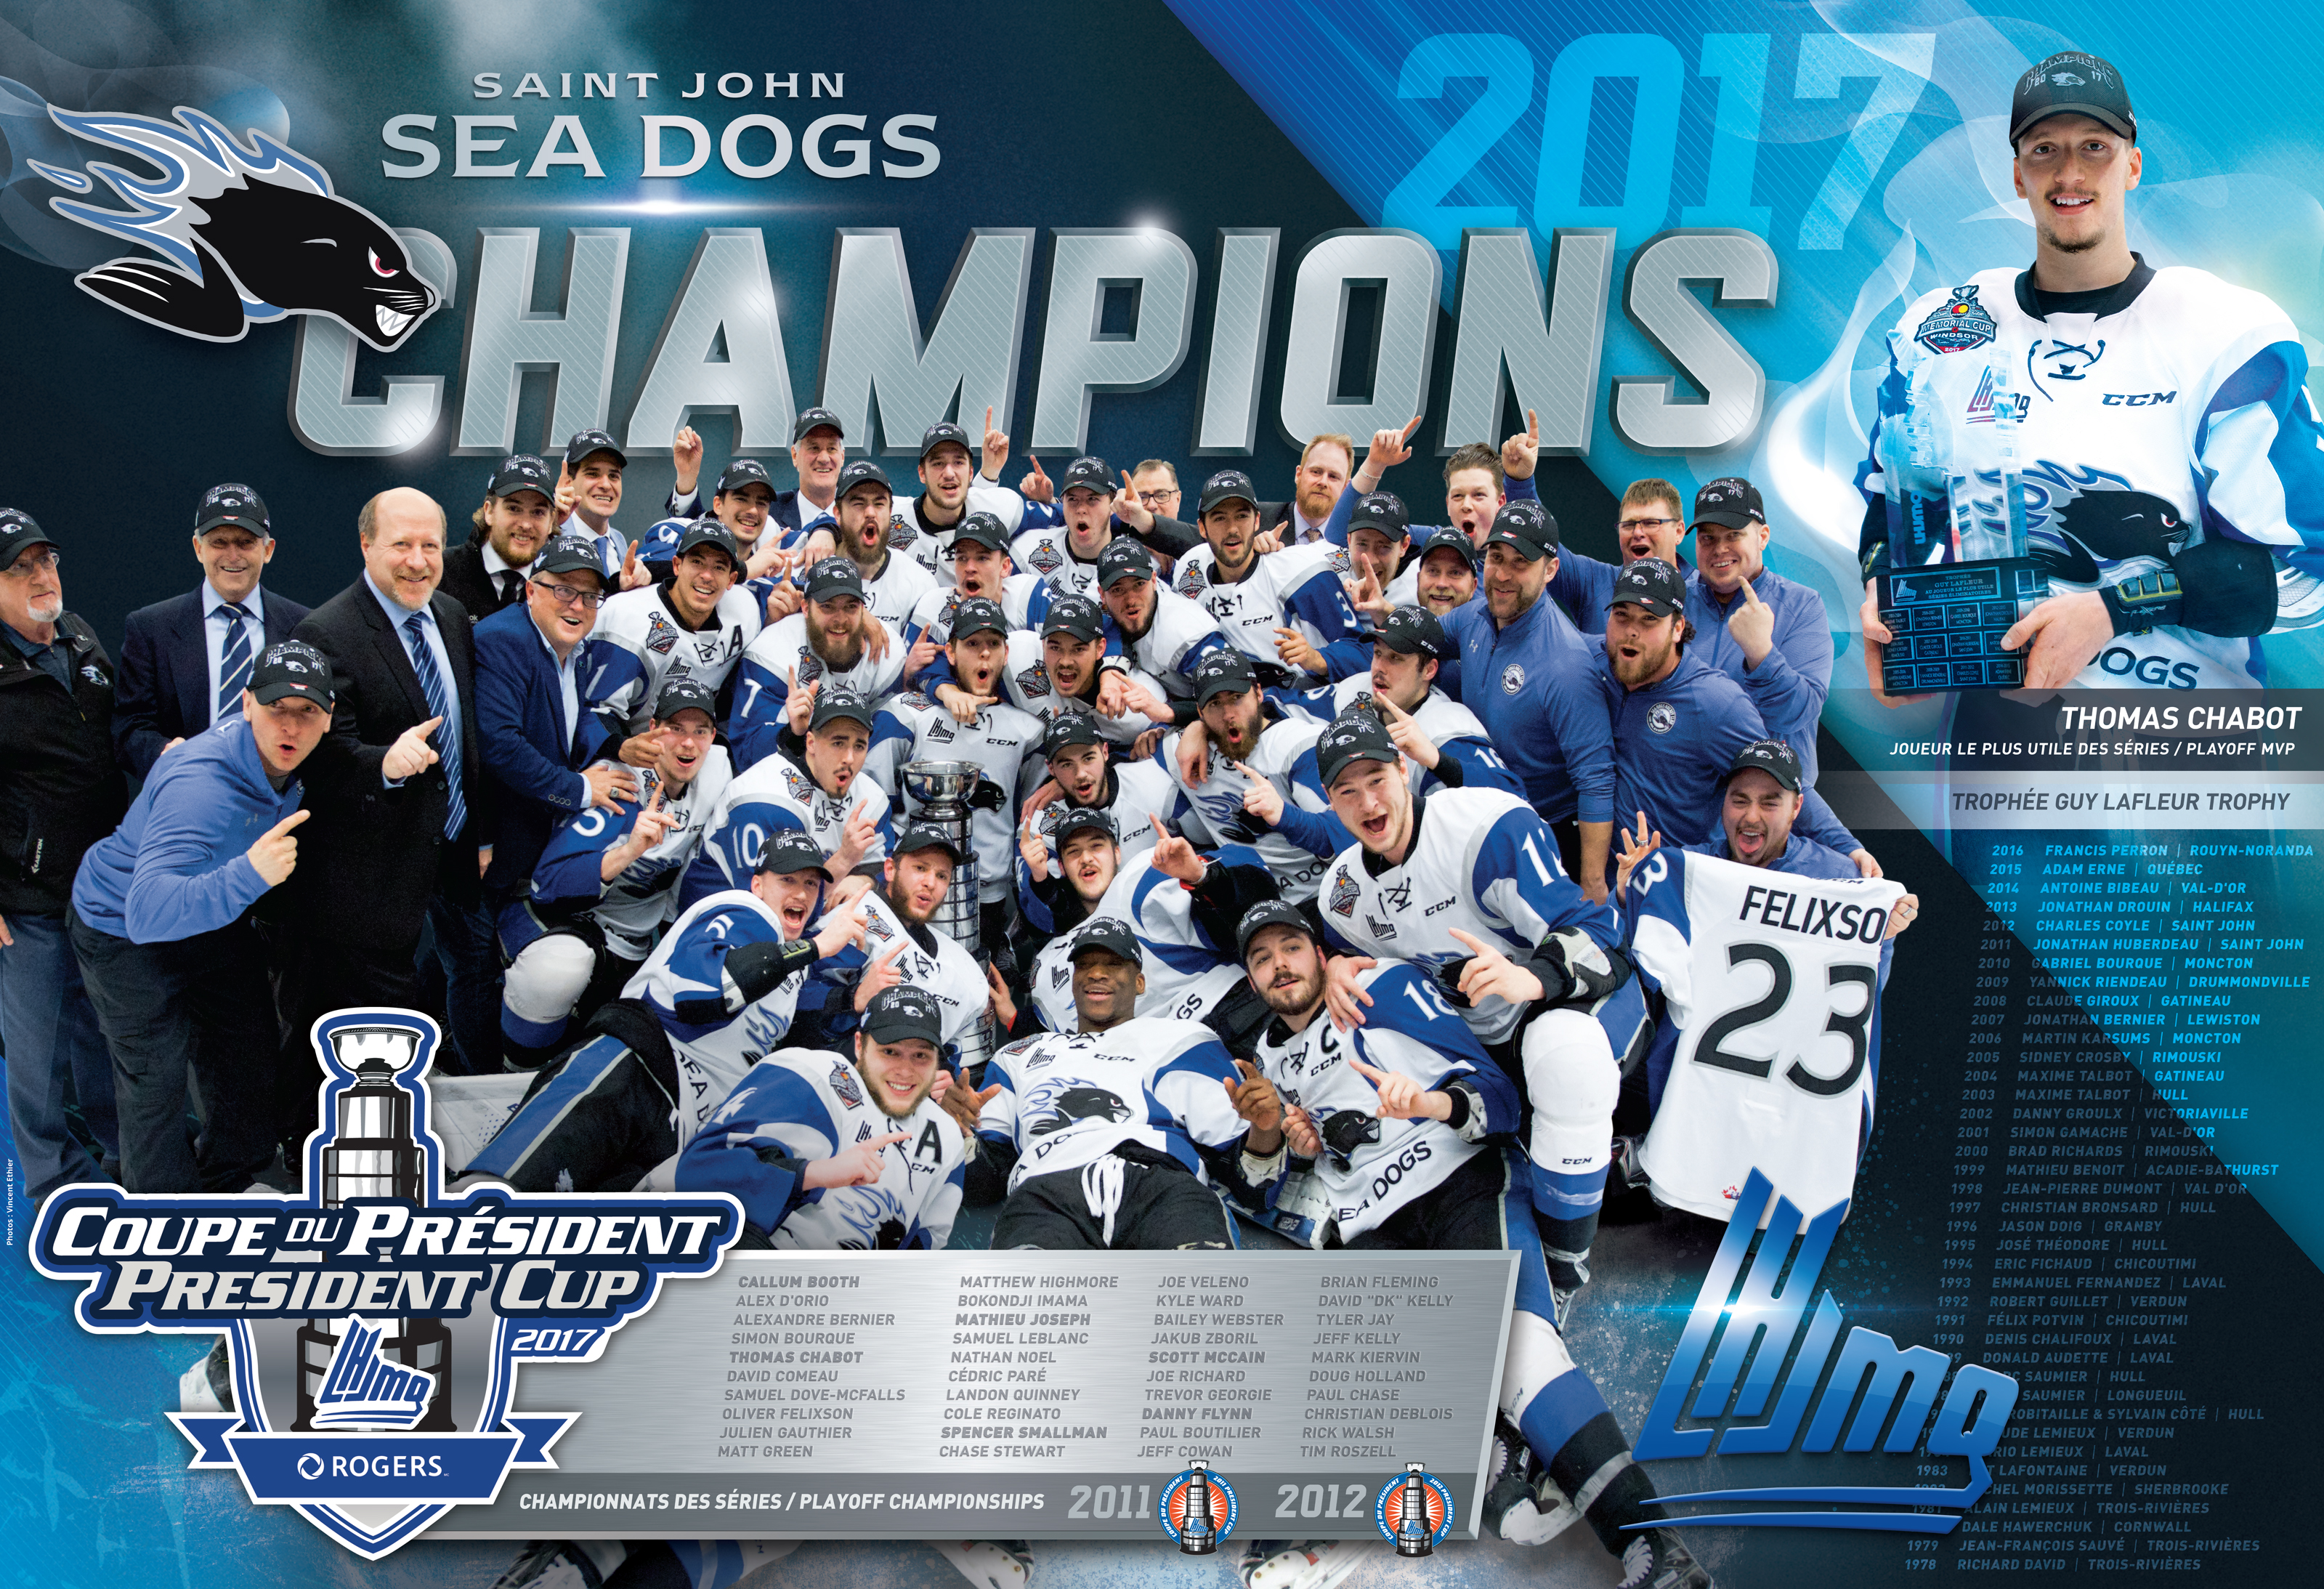 CHAMPIONS 2017 | Saint John, Sea Dogs